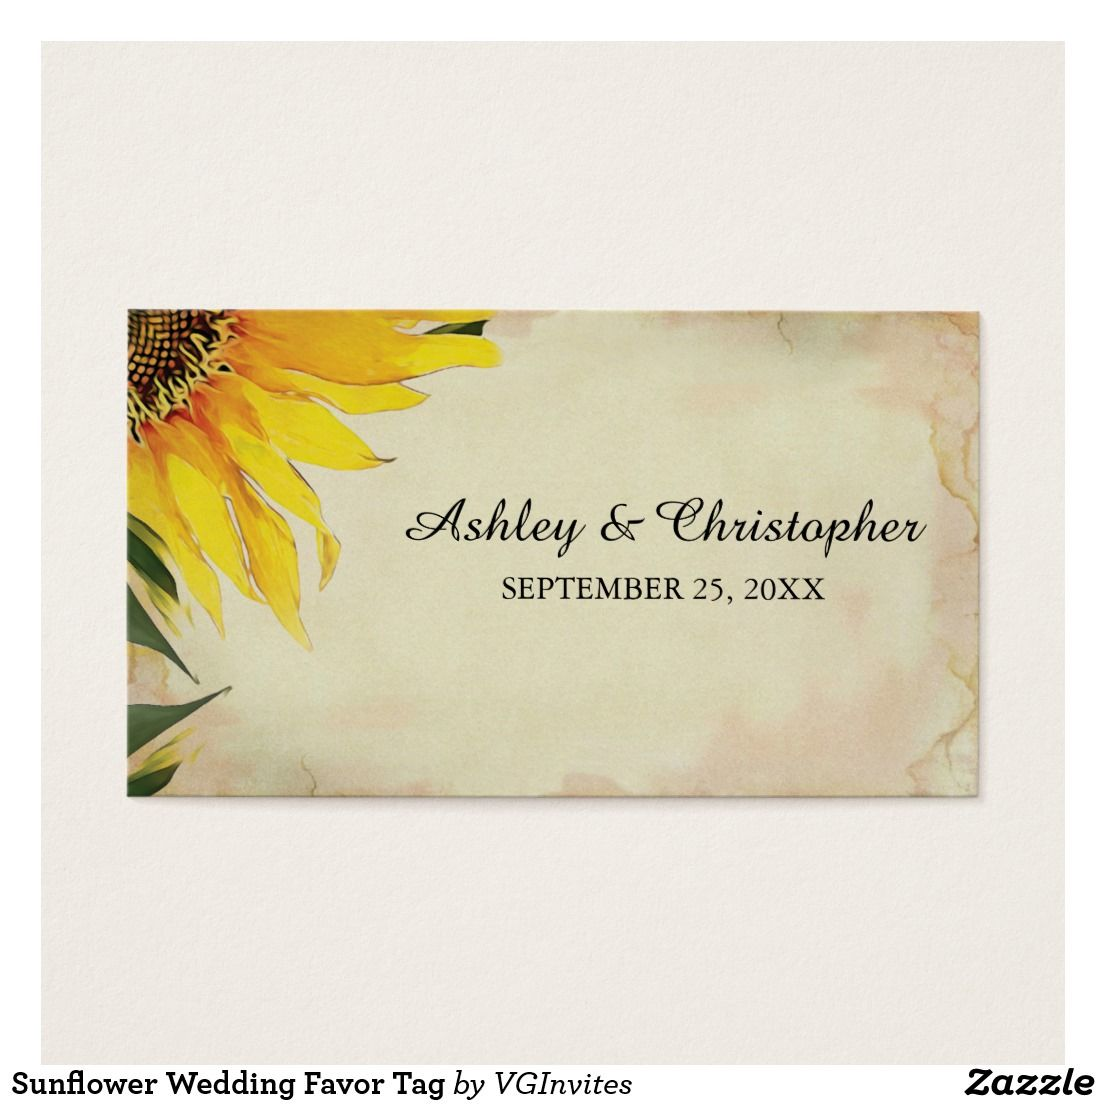 Sunflower Wedding Favor Tag | Favor tags, Tags and Sunflower wedding ...